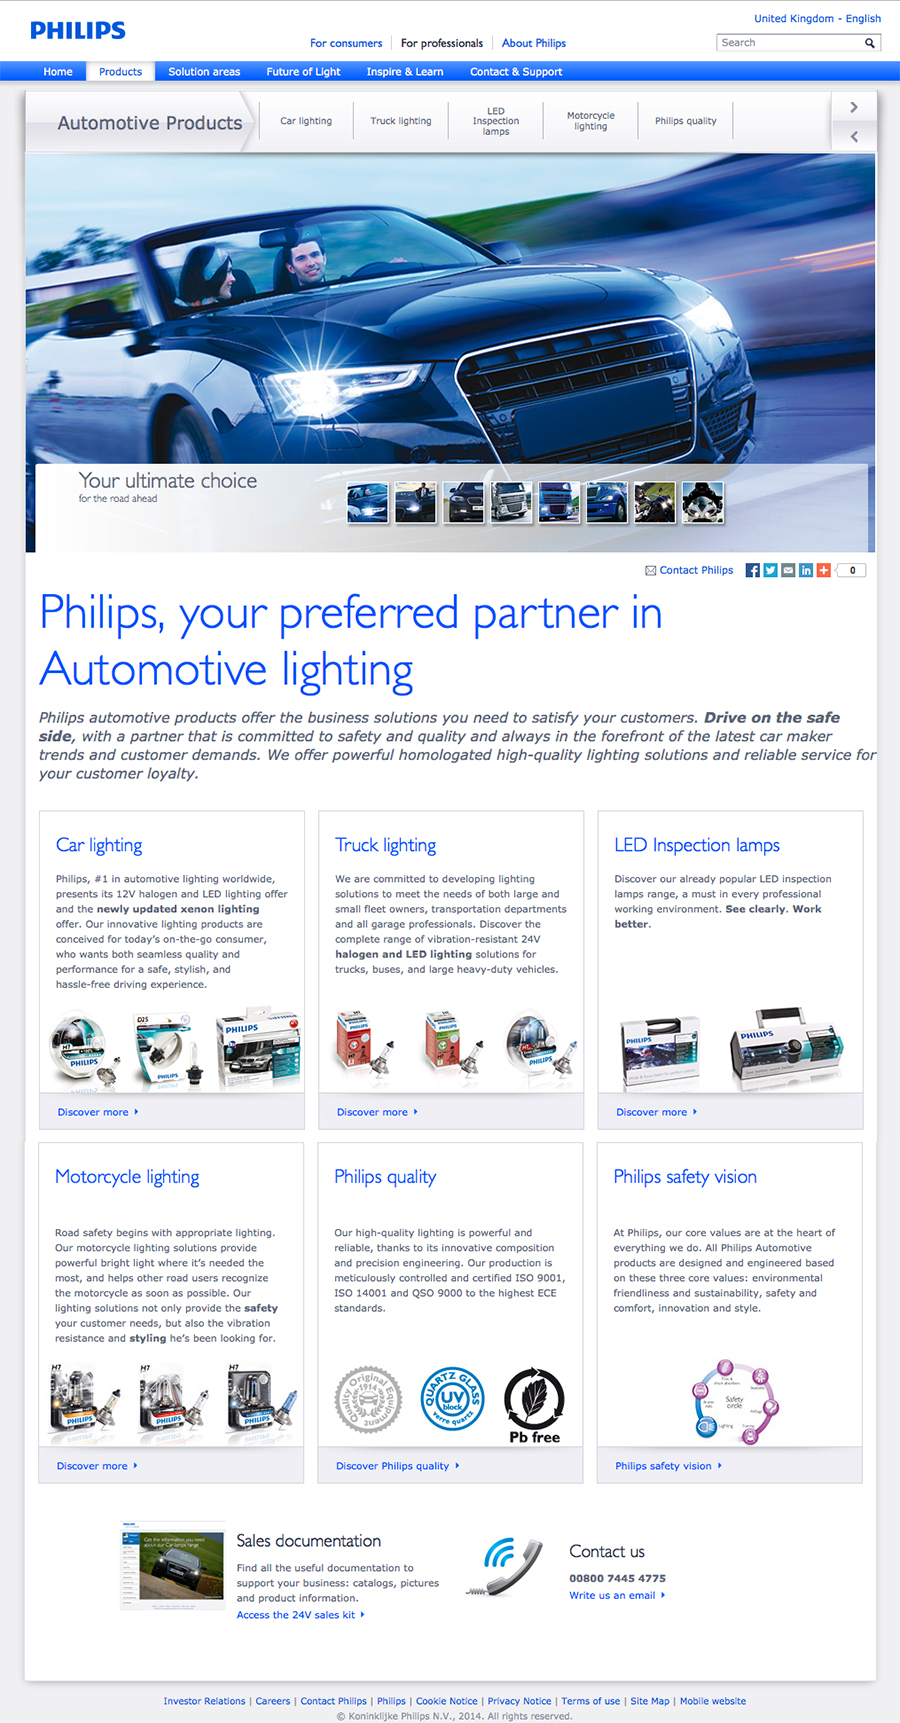 Philips automotive professional website - landing page